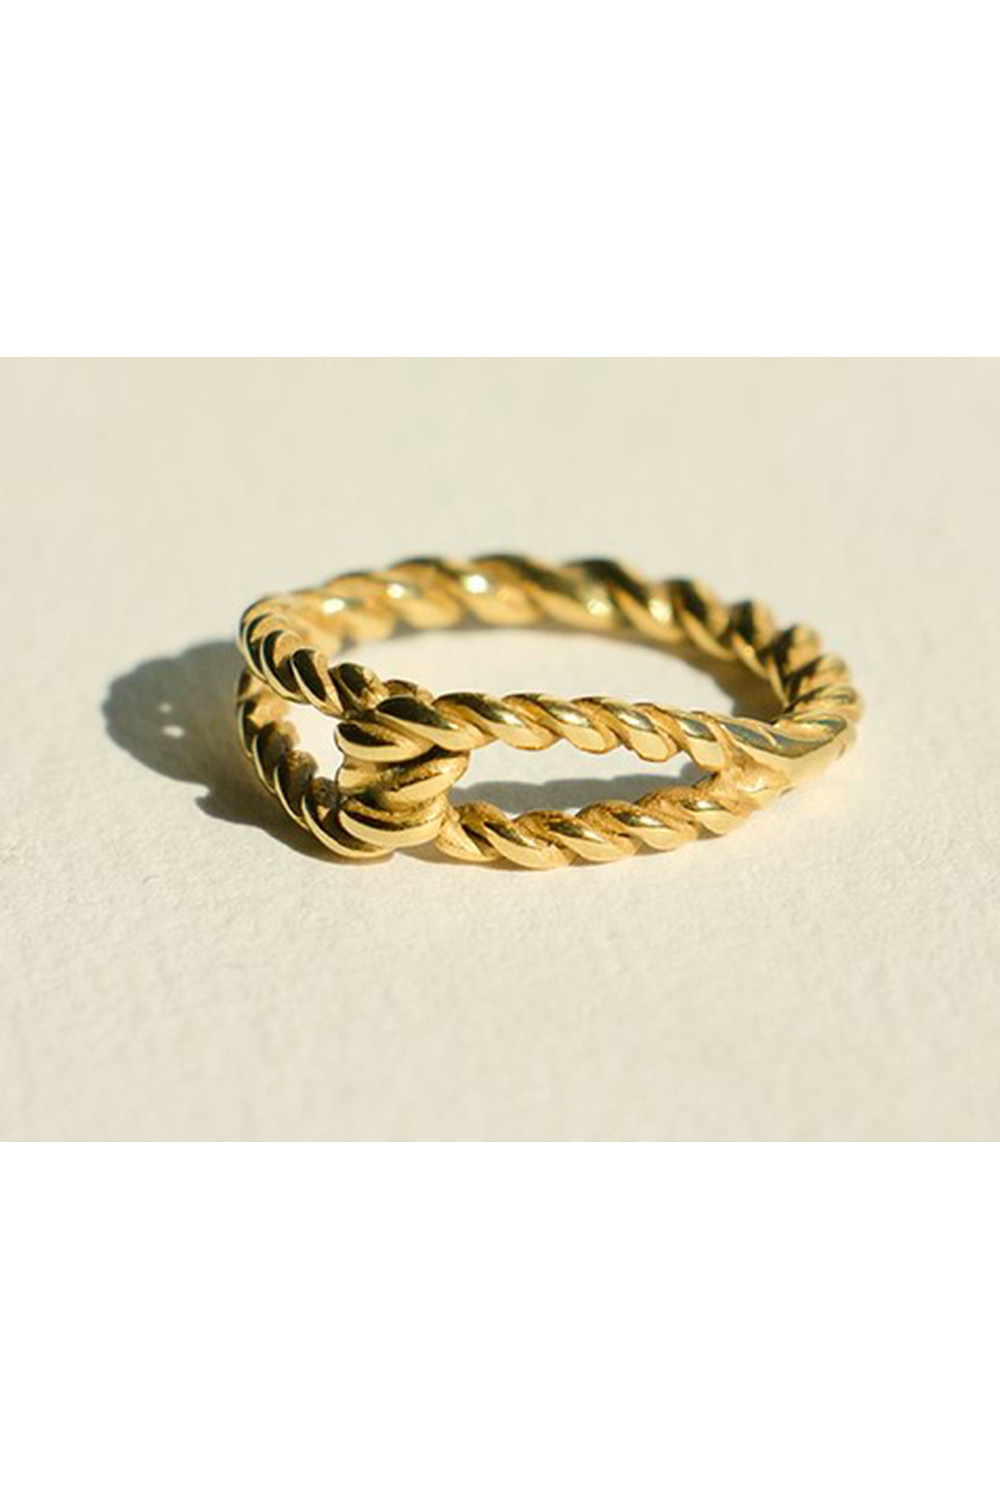 TWIST KNOT RING | Mad About The Boy | Mad About The Boy